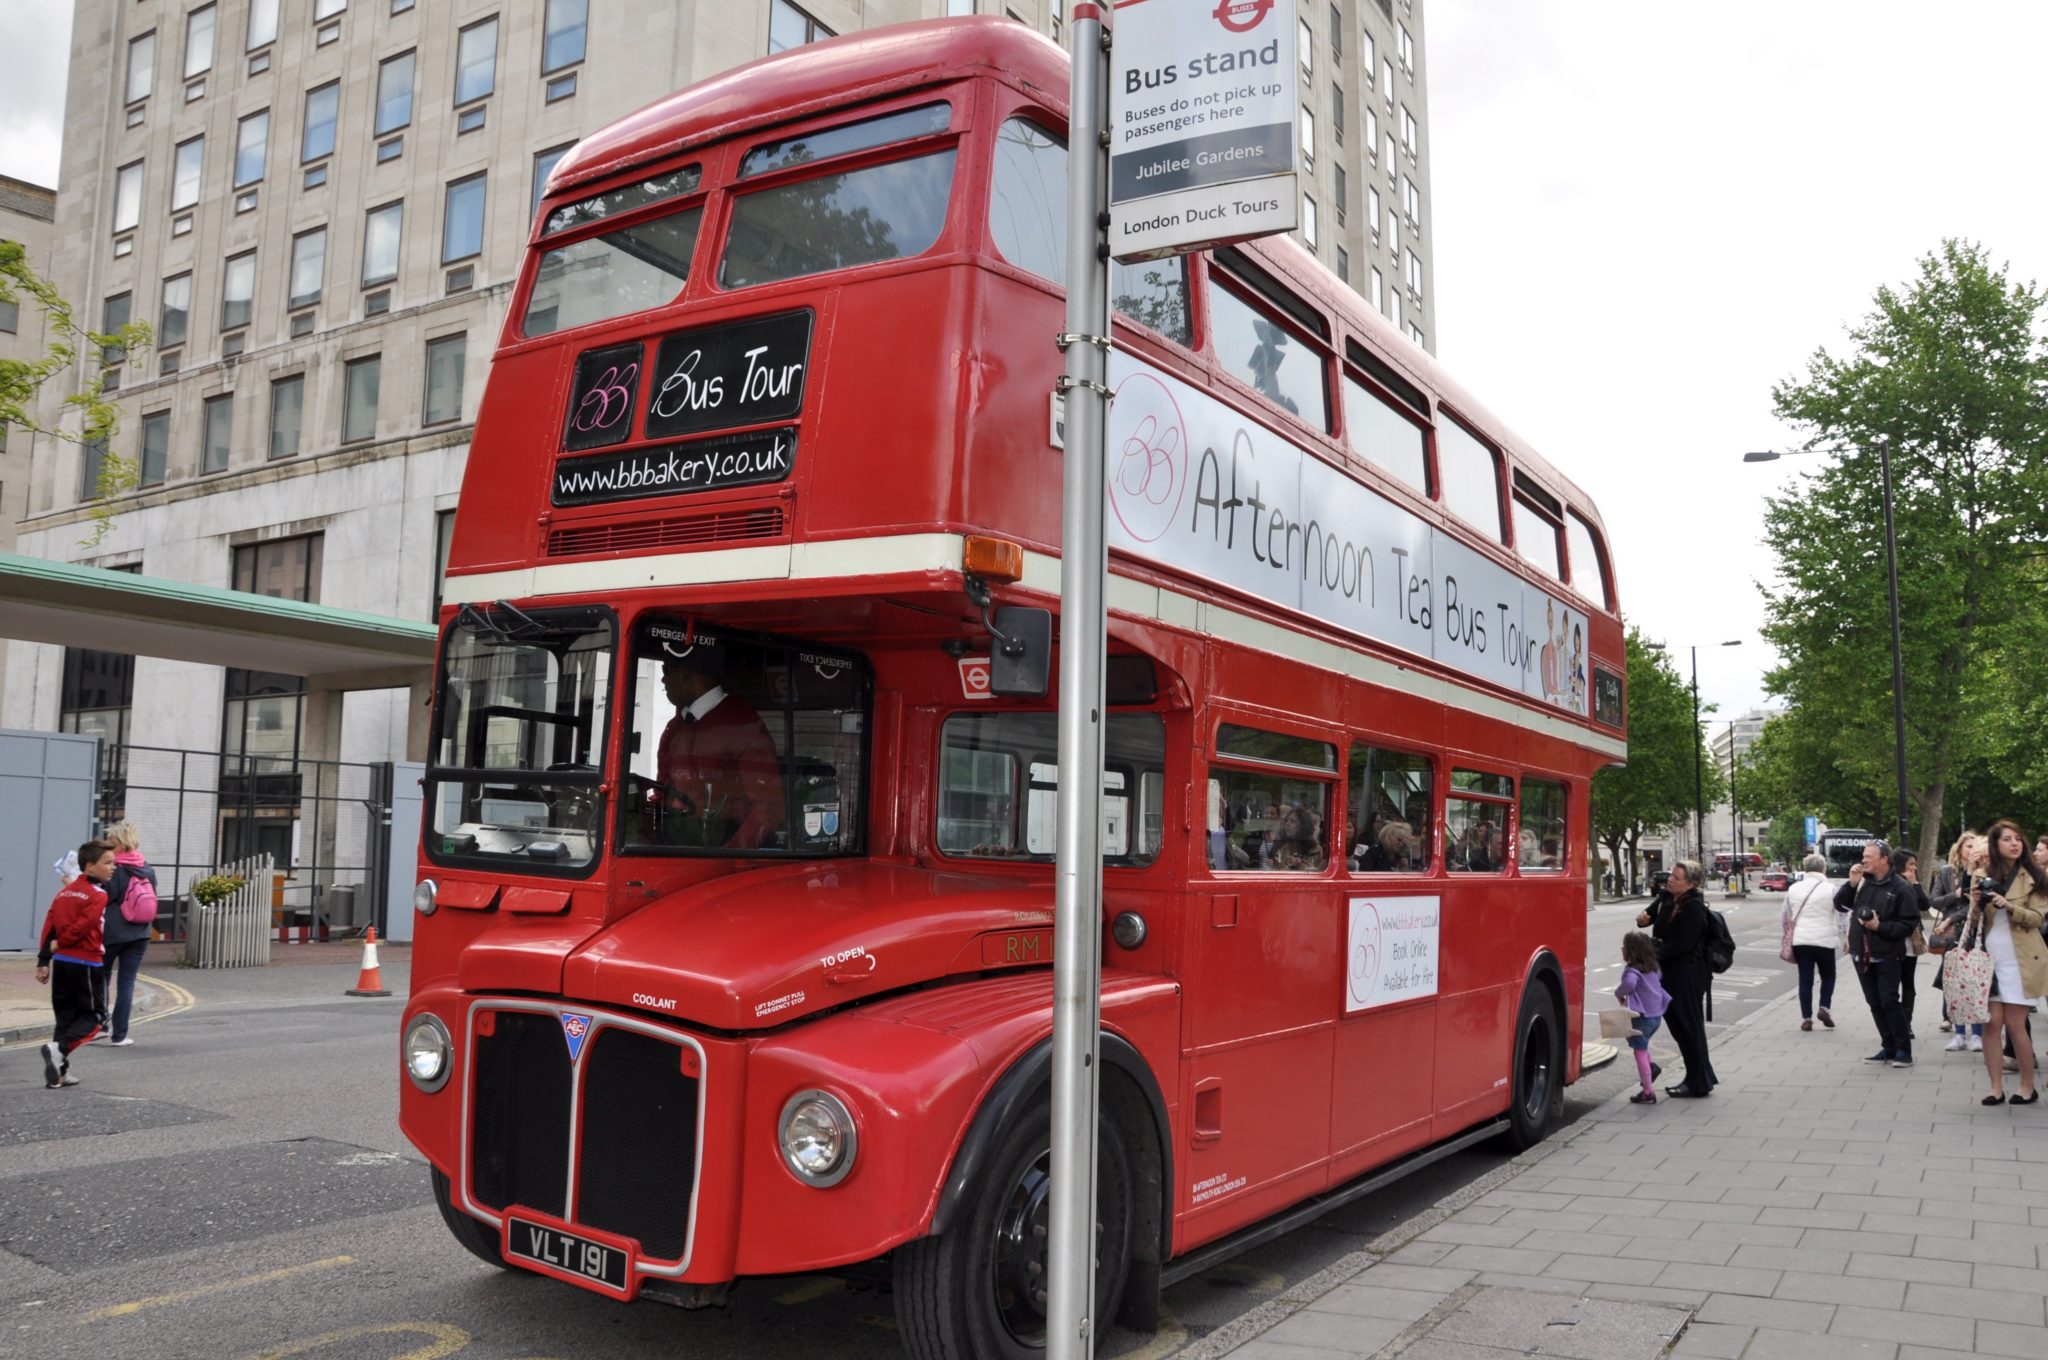 3_Afternoon Tea Bus Tour of London_MissPond